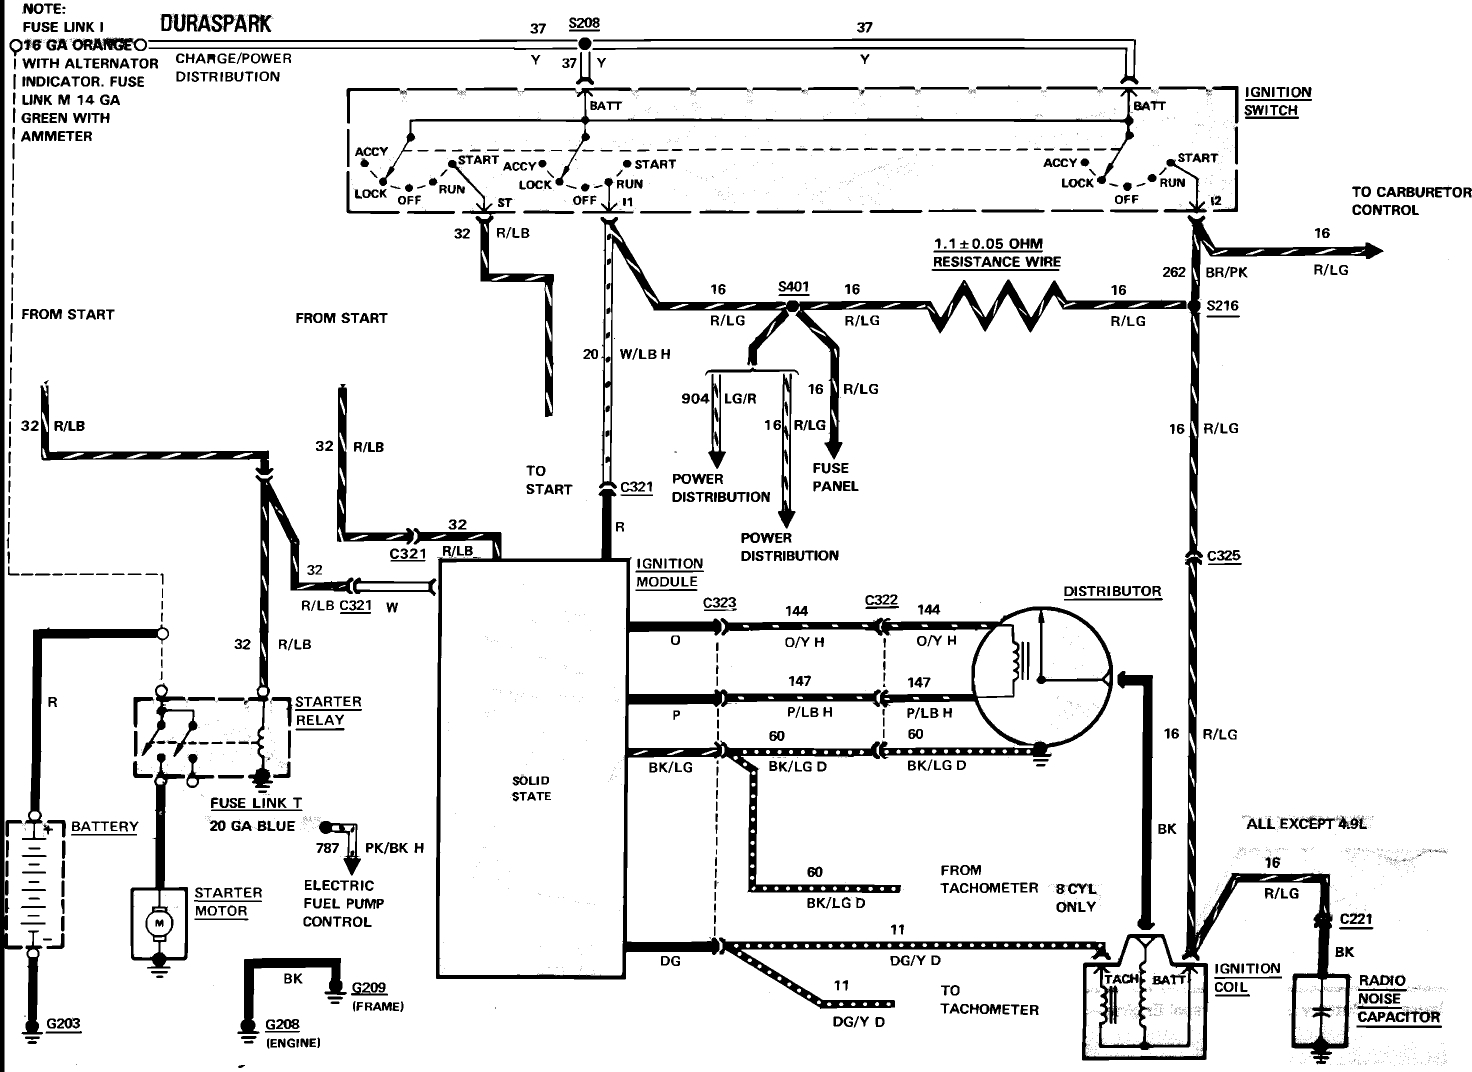 1996 f250 super duty wiring diagram